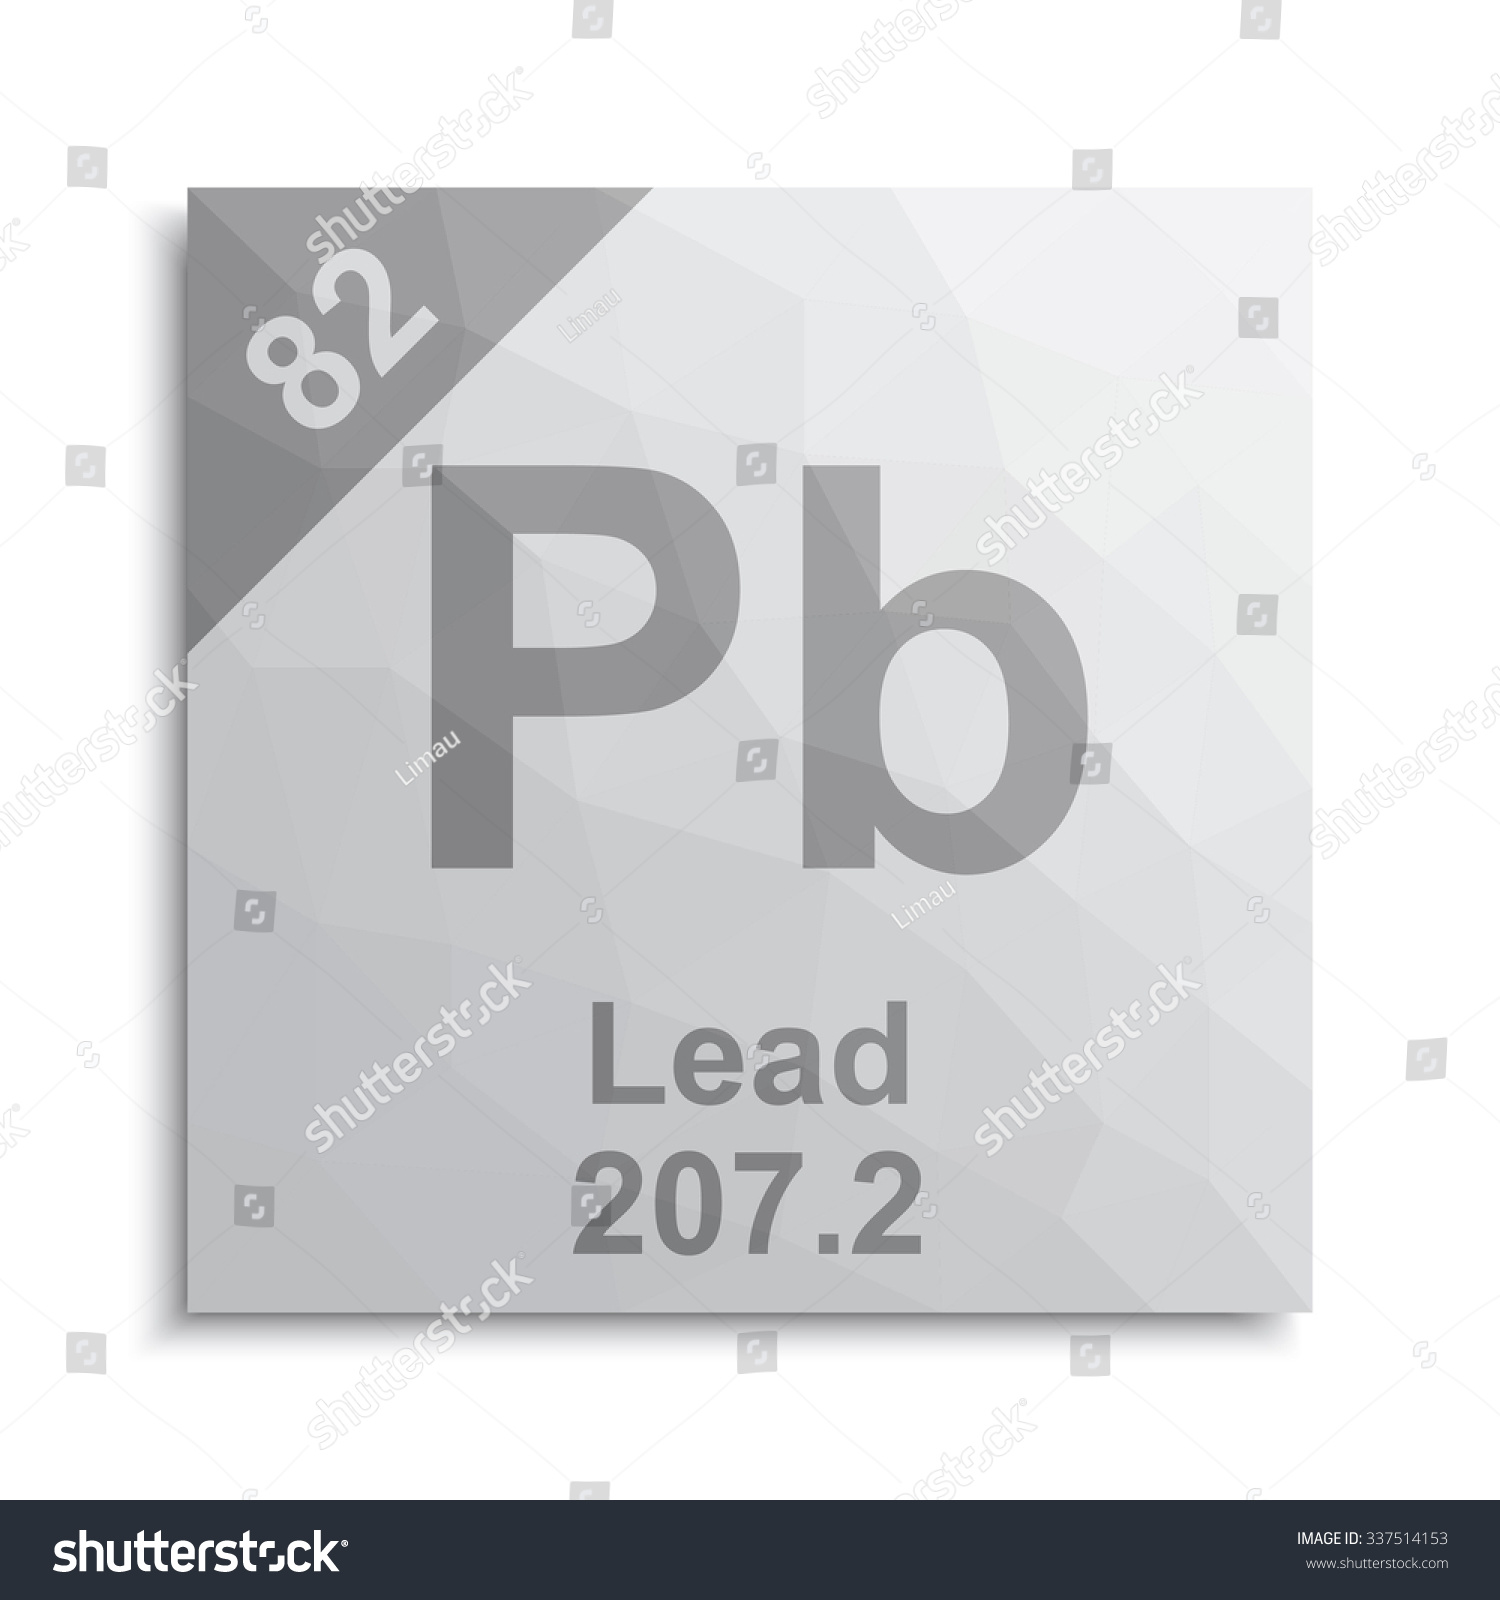 Periodic table lead images periodic table images lead element periodic table gallery periodic table images lead element periodic table stock vector 337514153 shutterstock gamestrikefo Gallery